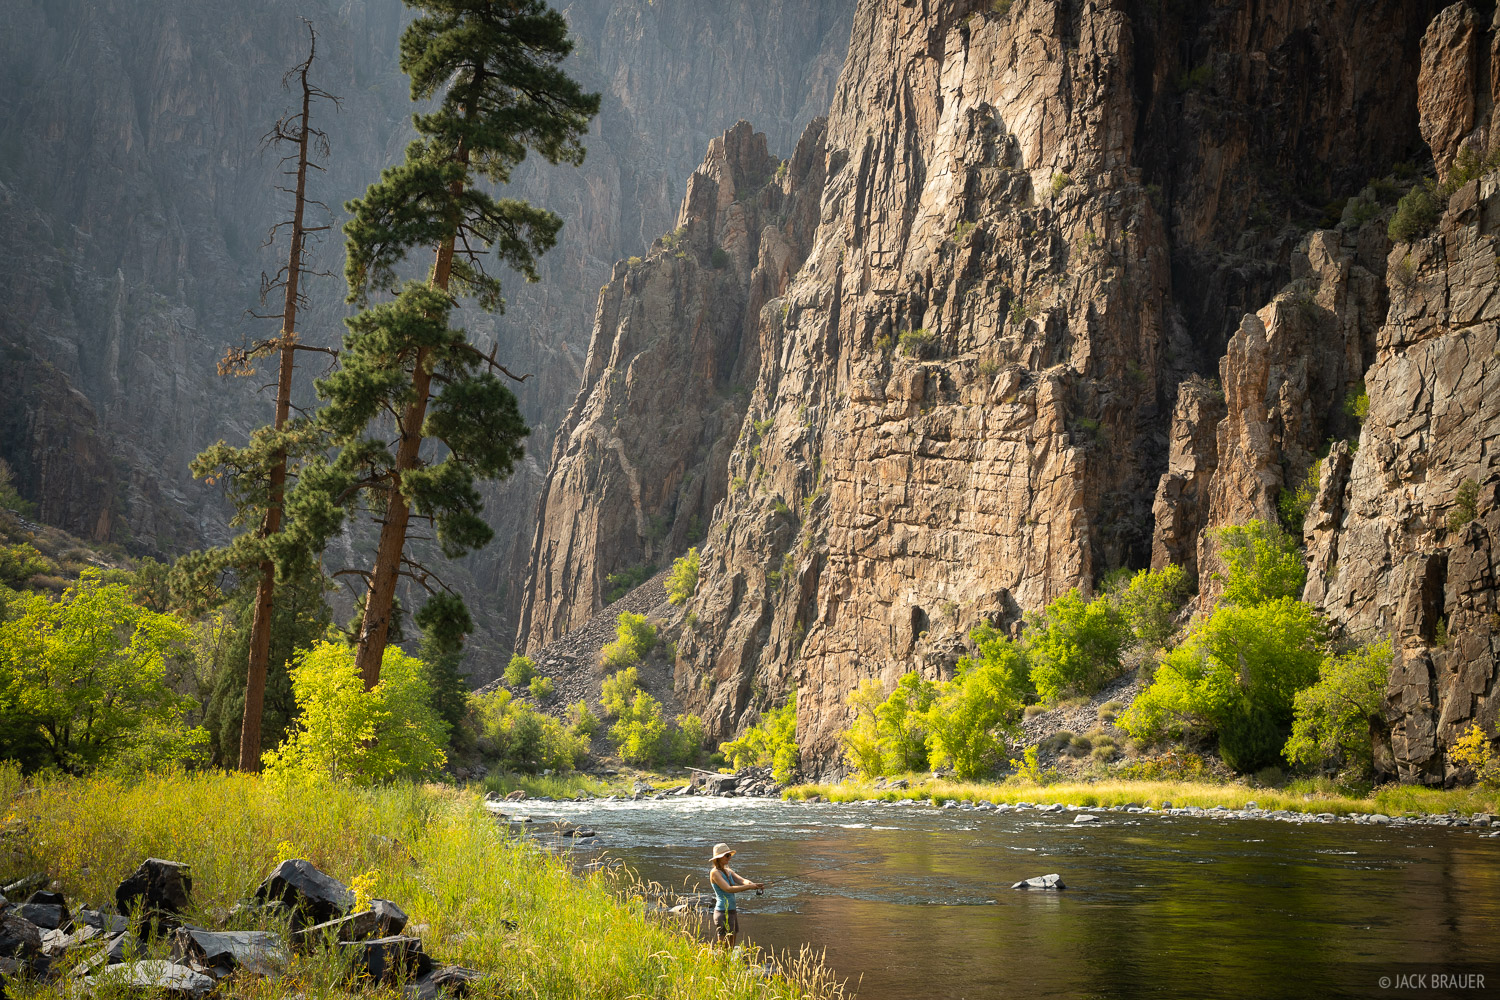 Fishing in the Gunnison River at the bottom of the Black Canyon - September.